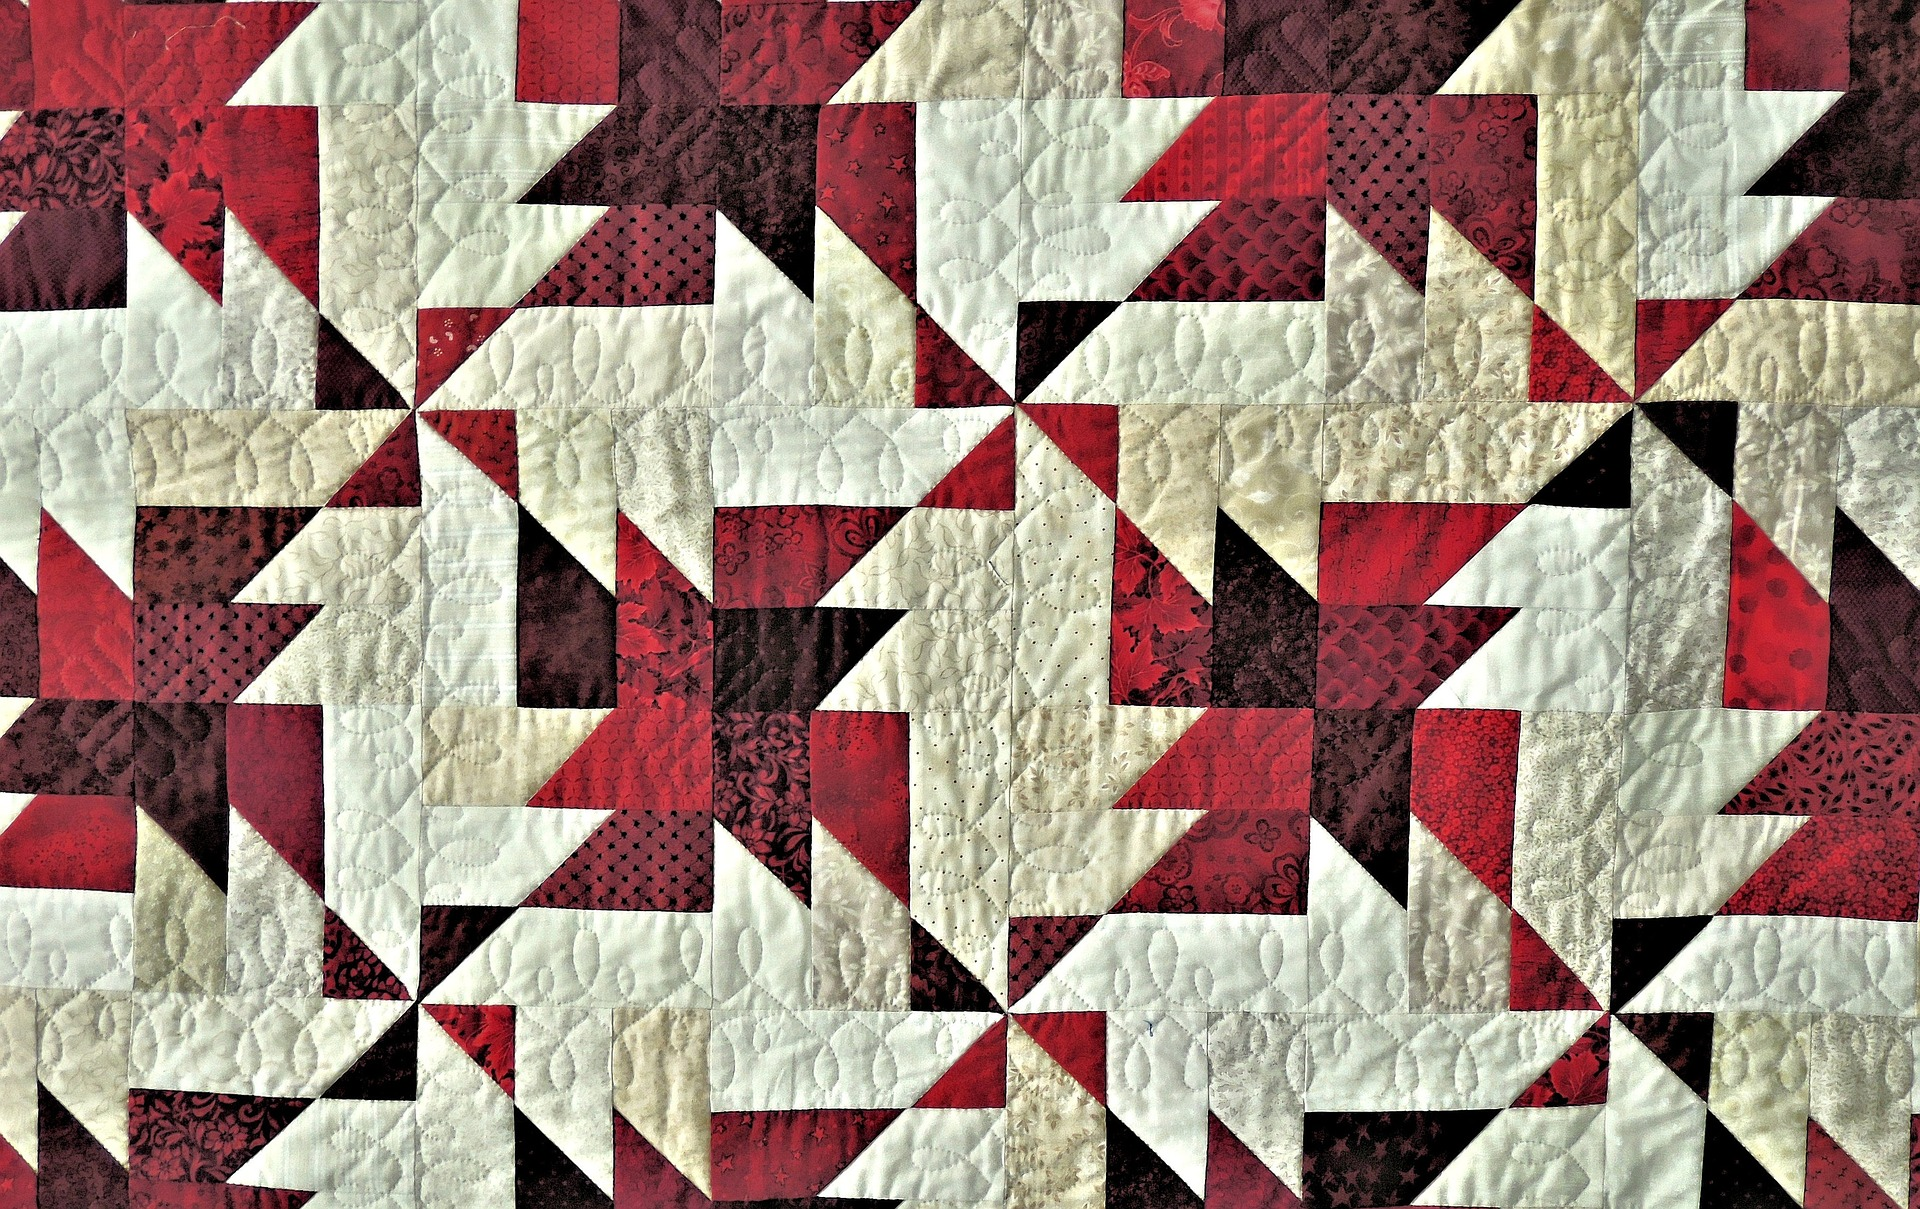 prize-winning-quilt-958633_1920 image